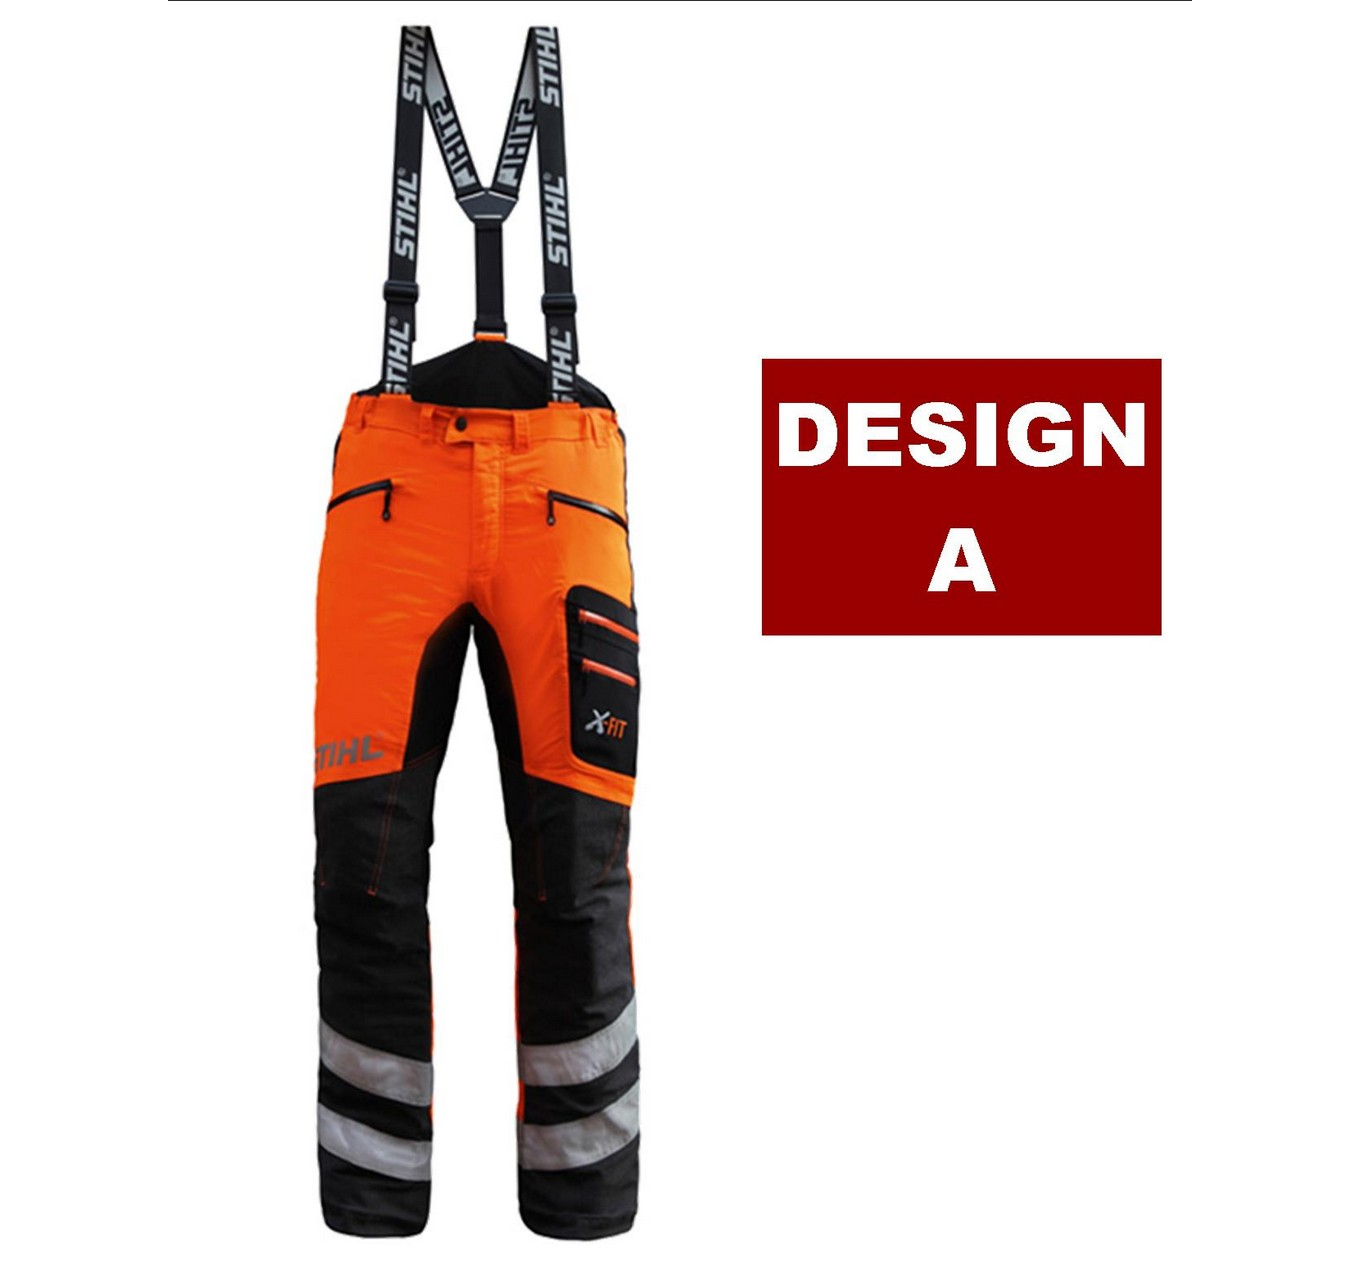 X-FIT Trousers Design A (M)